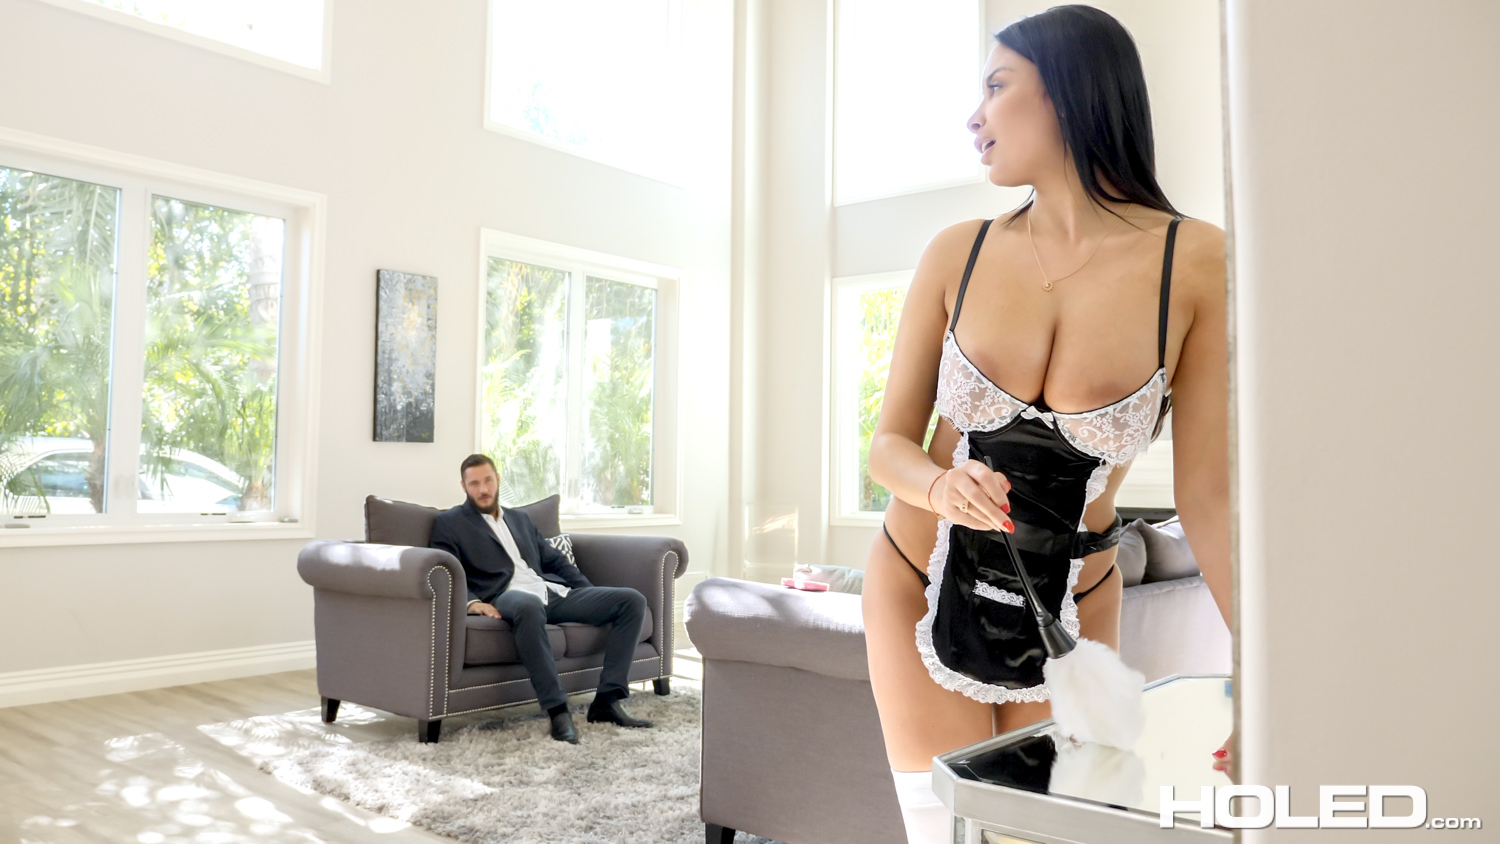 Holed Anissa Kate Plugged French Maid - Anal Sex Tube -6472